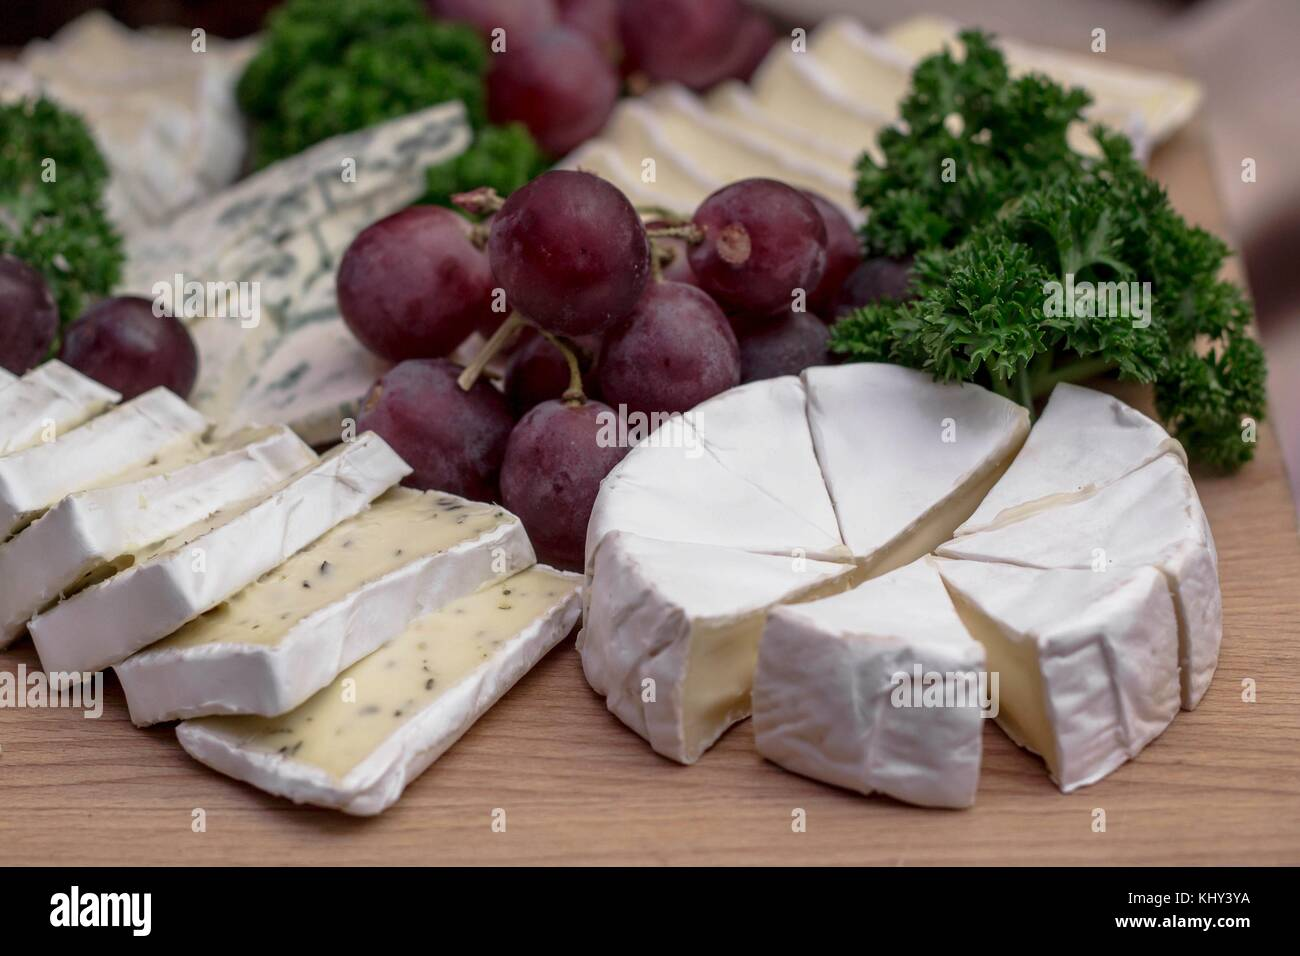 Cheese board: Camembert with herbs decorated with grapes and parsley - Stock Image